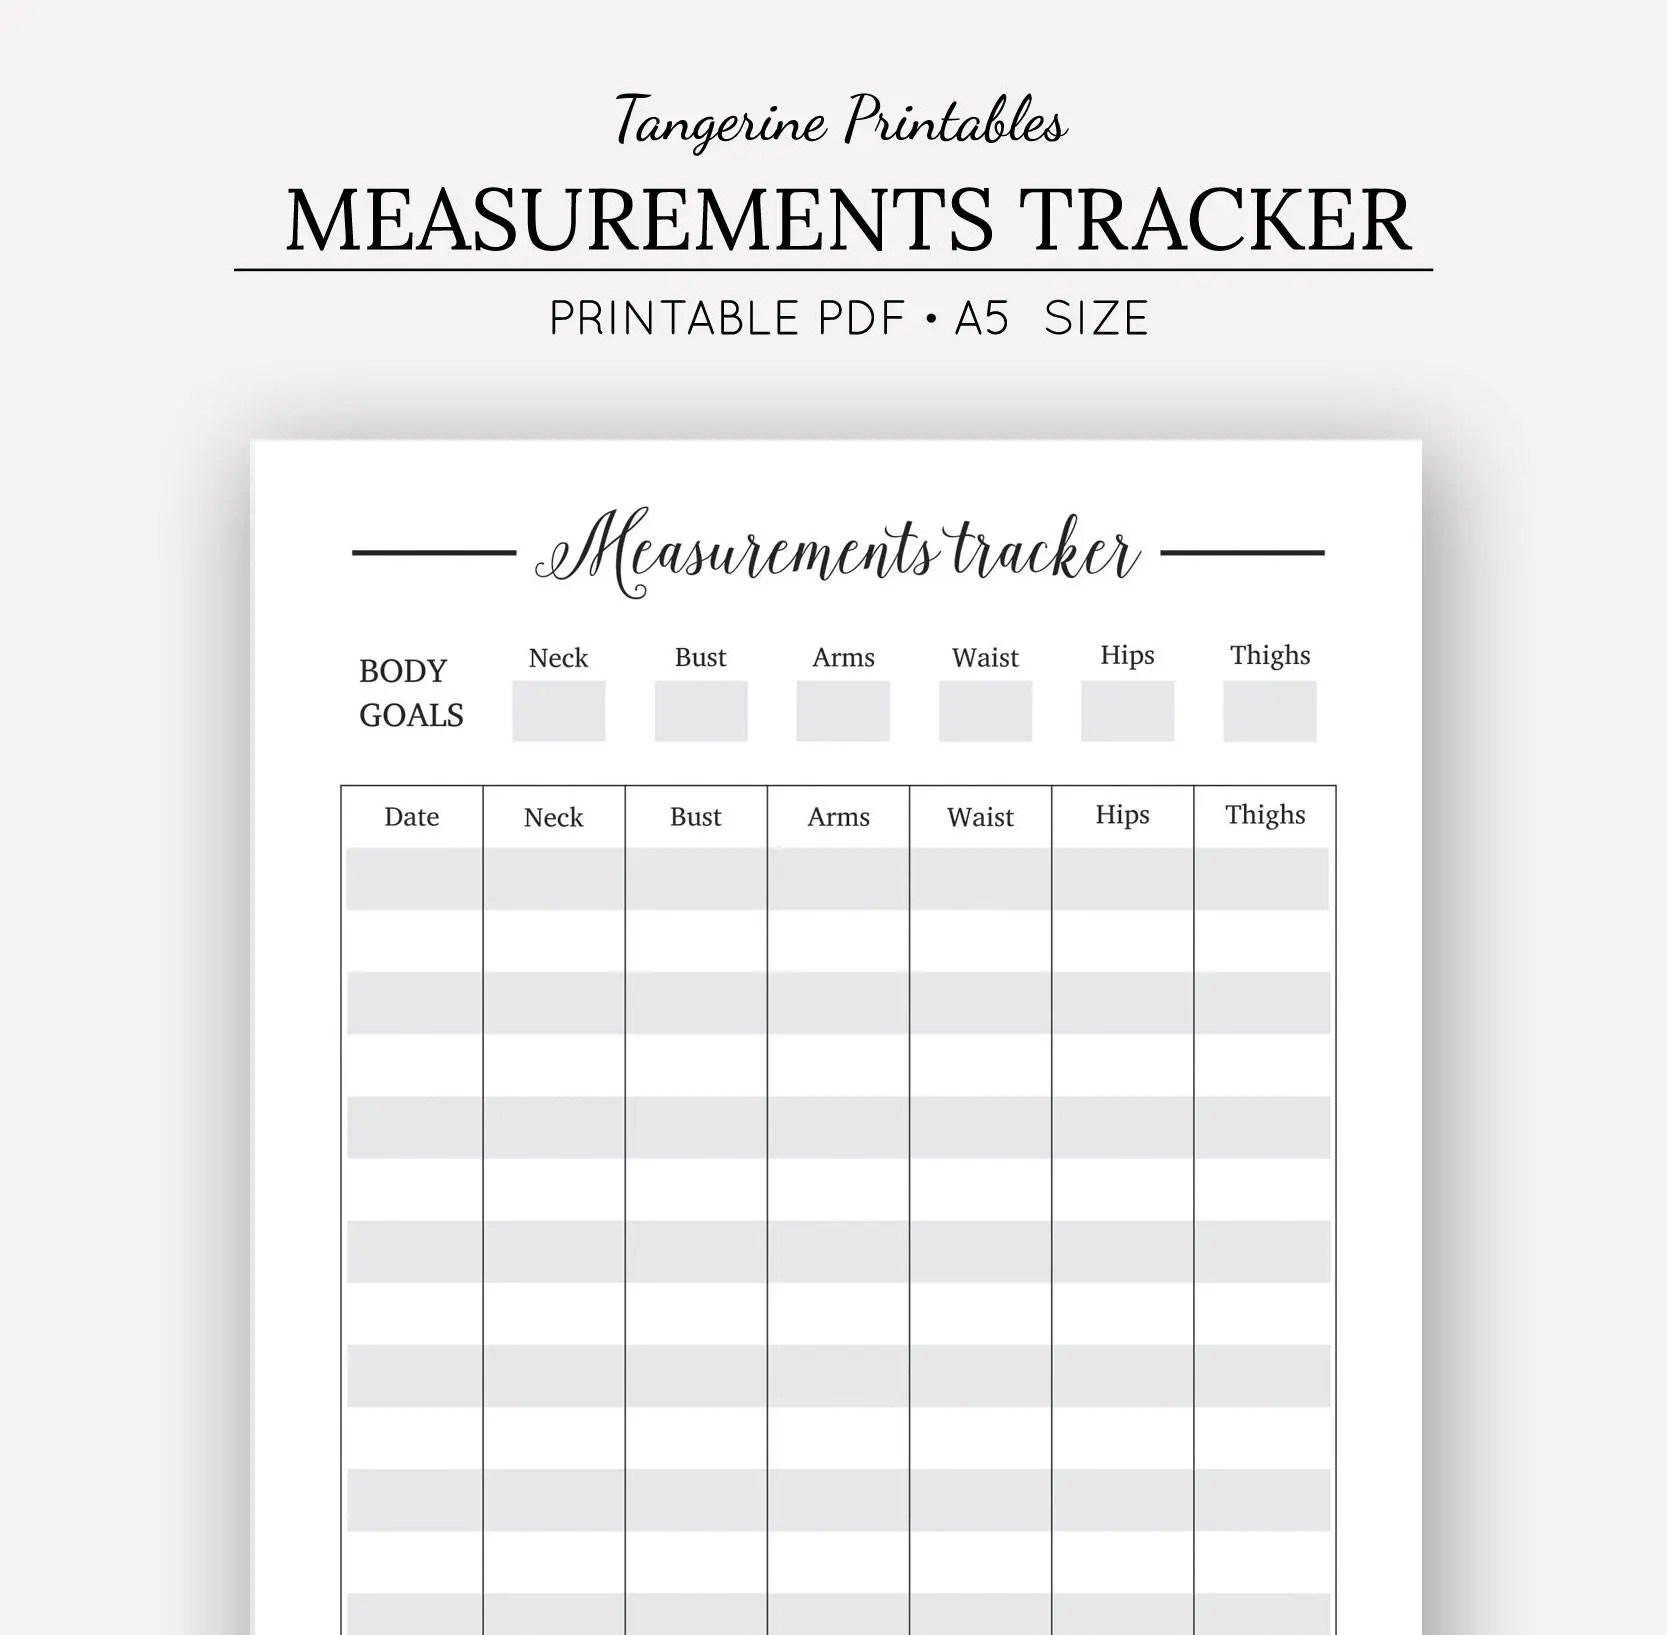 Measurement Tracker Printable Planner A5 Printables Body